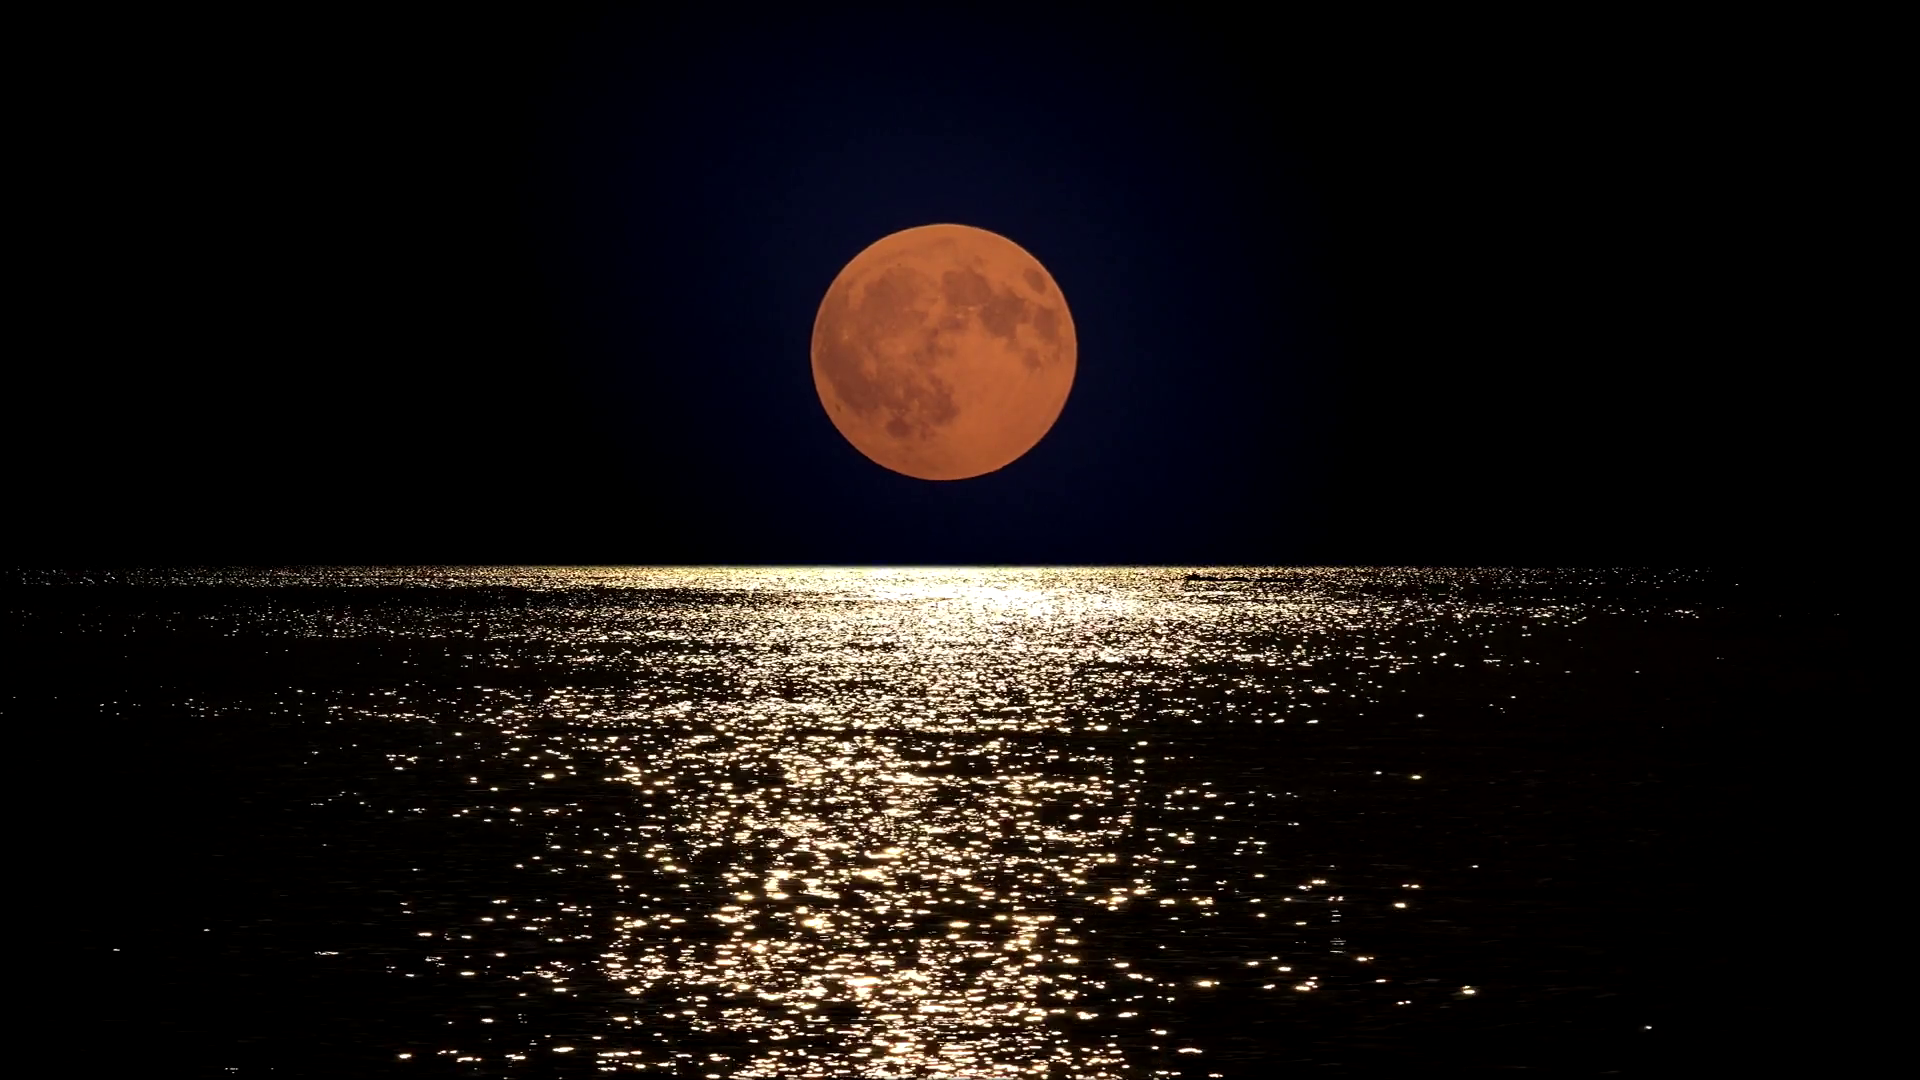 full-moon-light-reflect-in-sea-water_s0tagkugg_thumbnail-full01.png